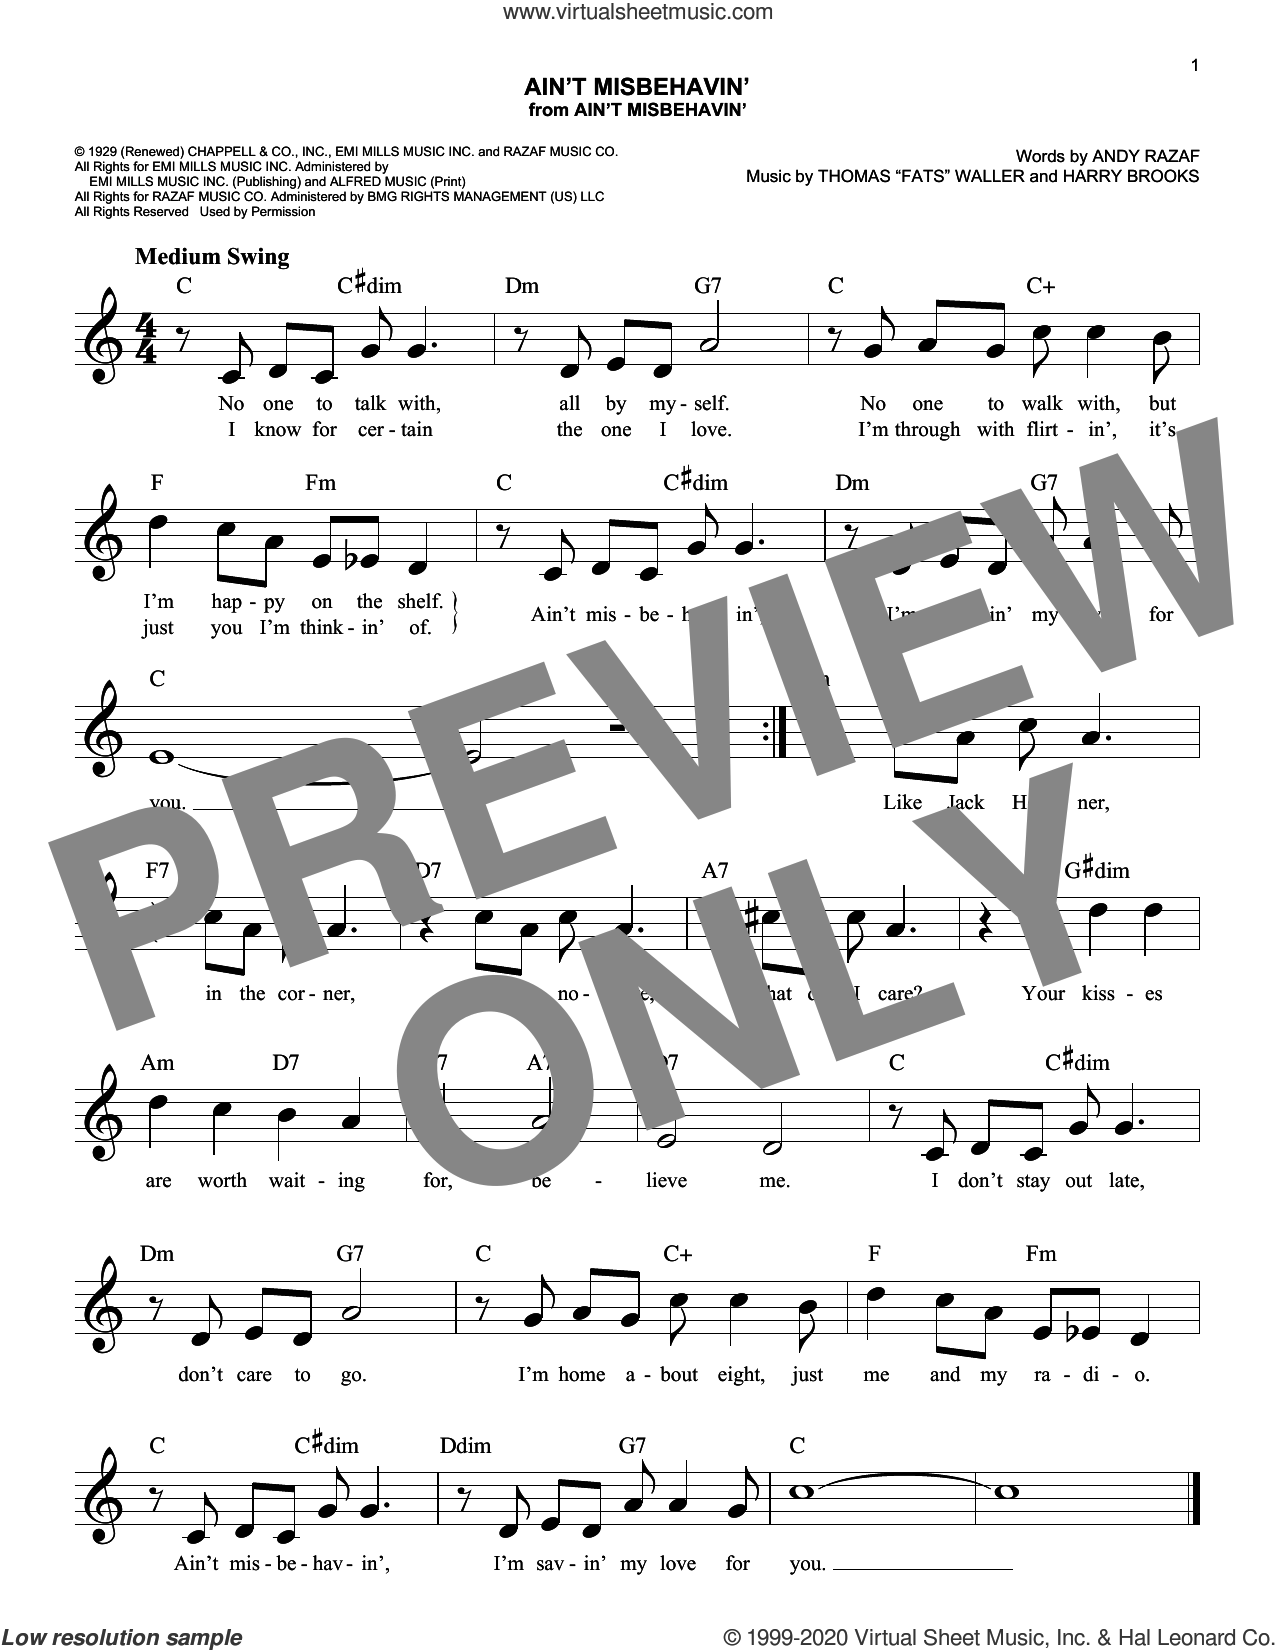 Ain't Misbehavin' sheet music for voice and other instruments (fake book) by Andy Razaf, Thomas Waller and Harry Brooks, intermediate skill level